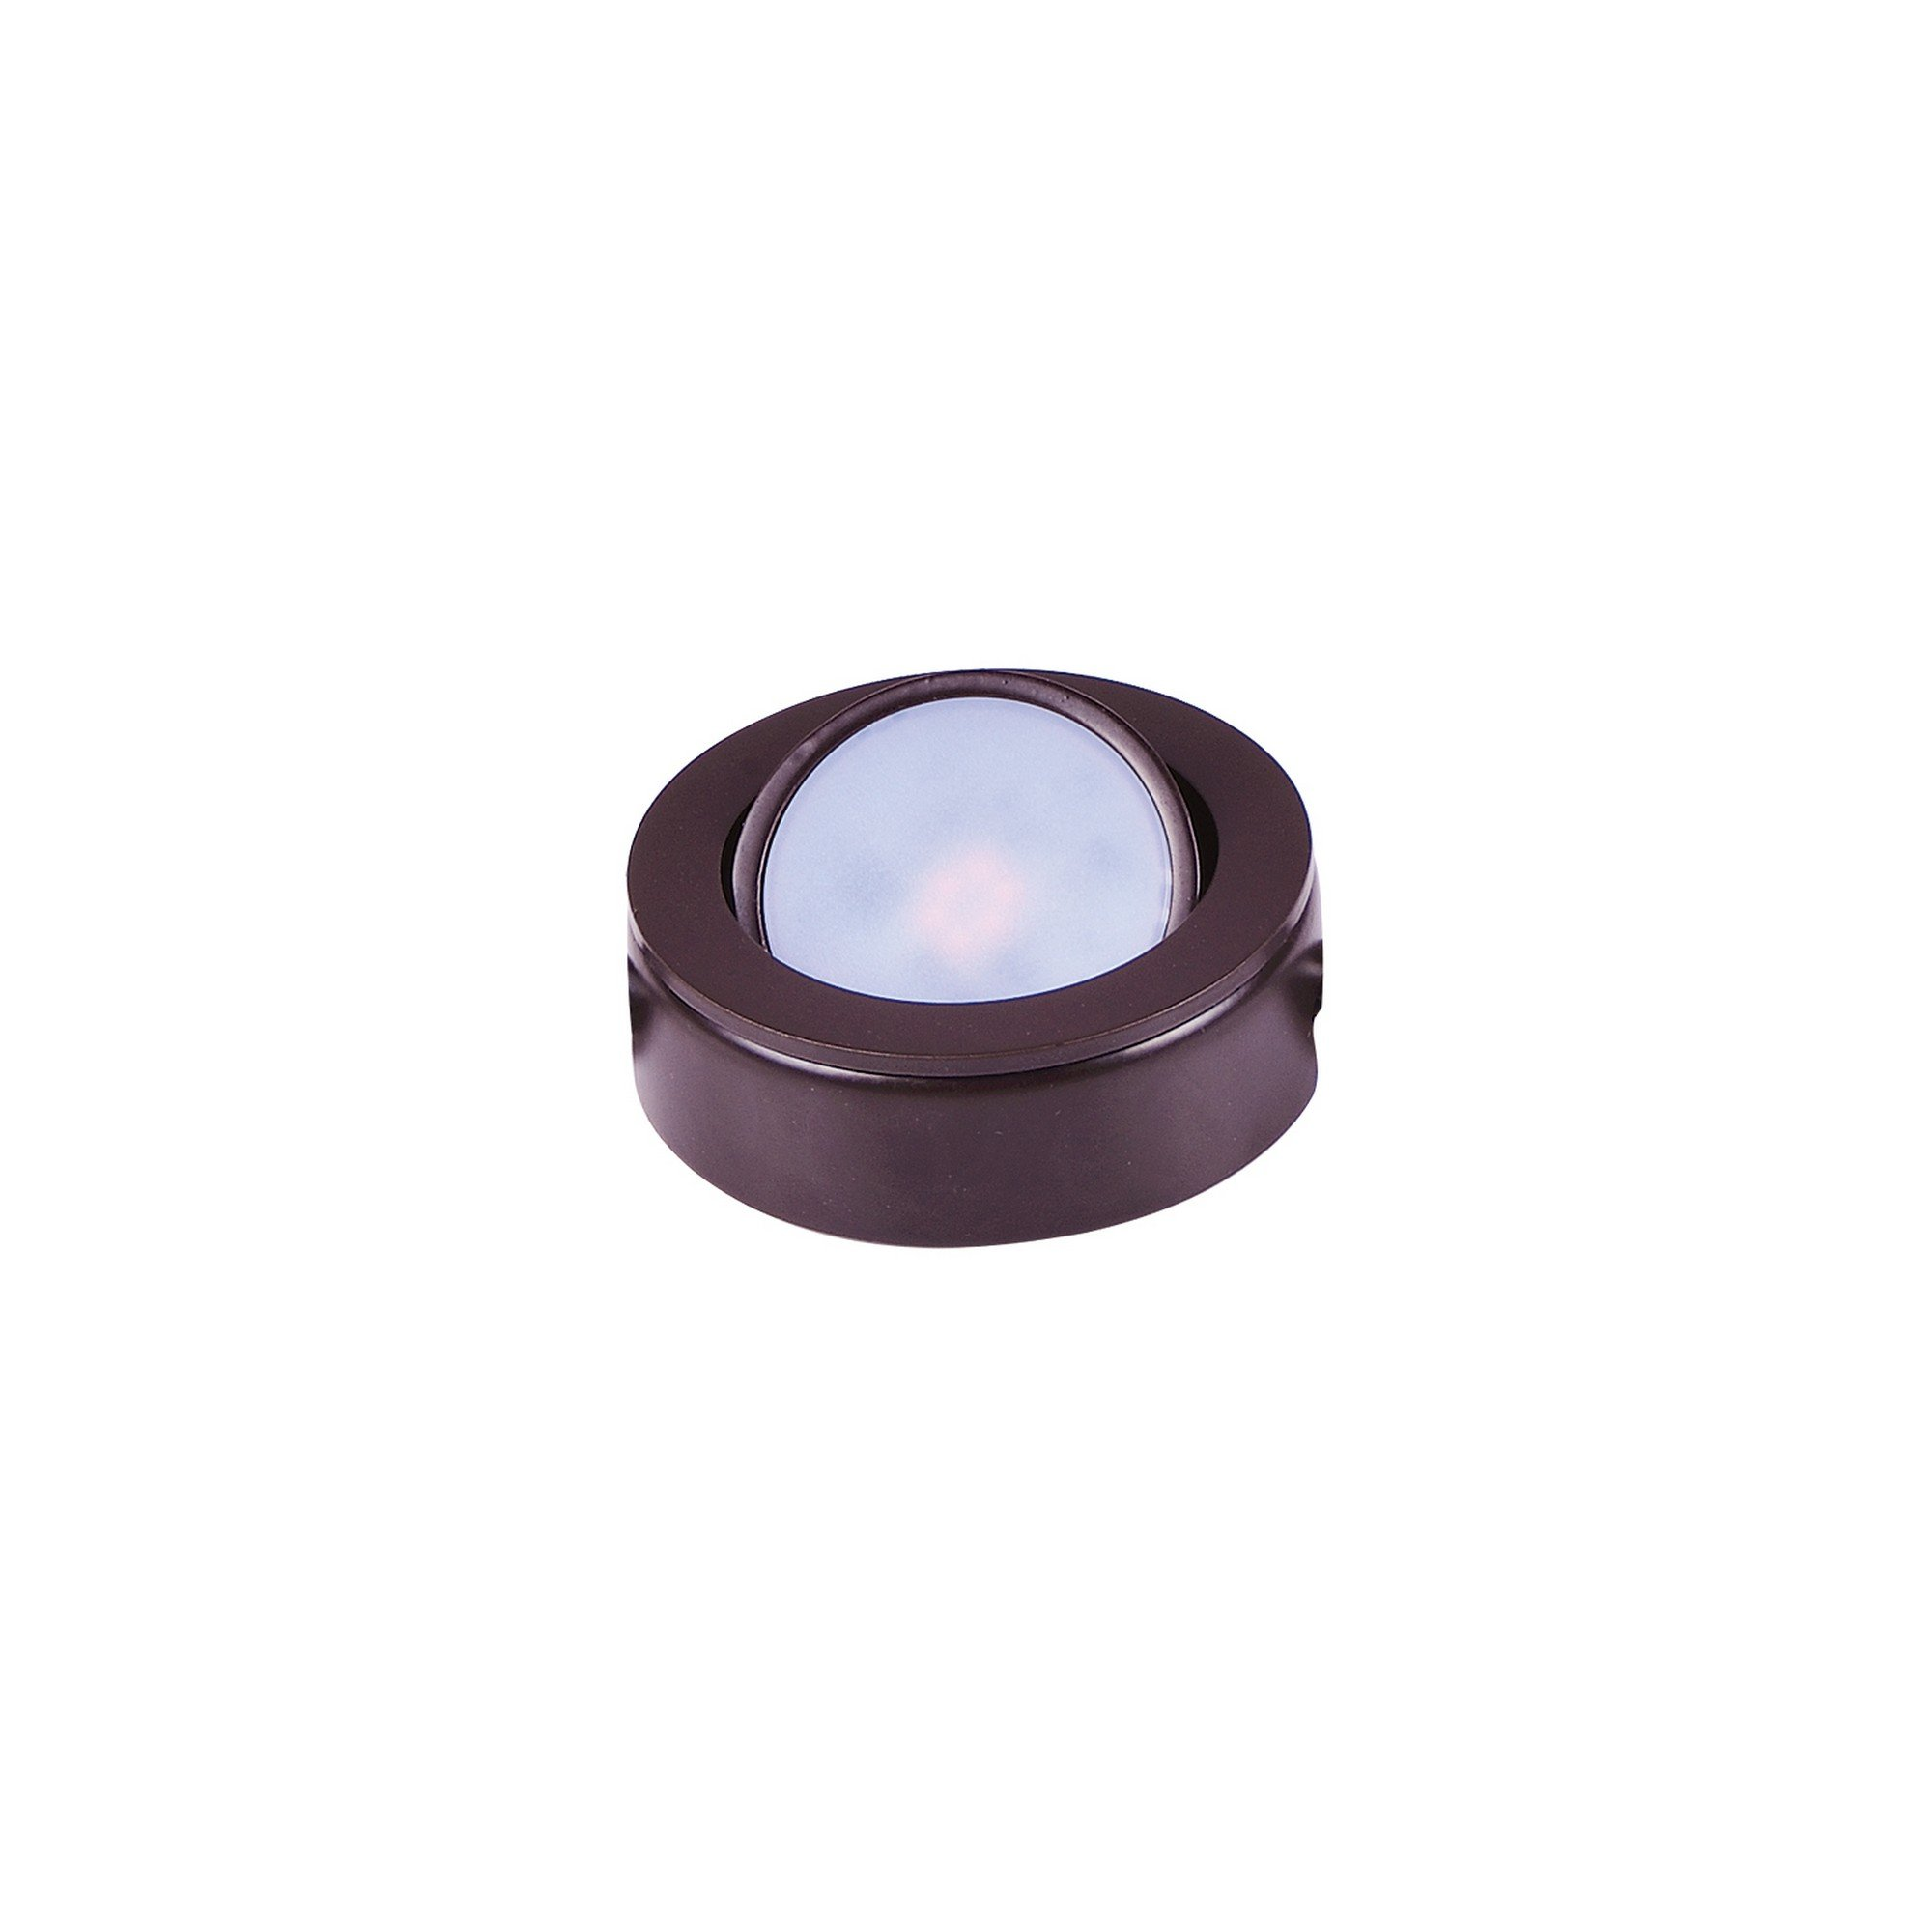 Maxim 53830BRZ CounterMax MX-LD-AC LED Puck 2700K and 3000K, Anodized Bronze Finish, Glass, PCB LED Bulb, 40W Max, Dry Safety Rating, Standard Dimmable, Shade Material, Rated Lumens